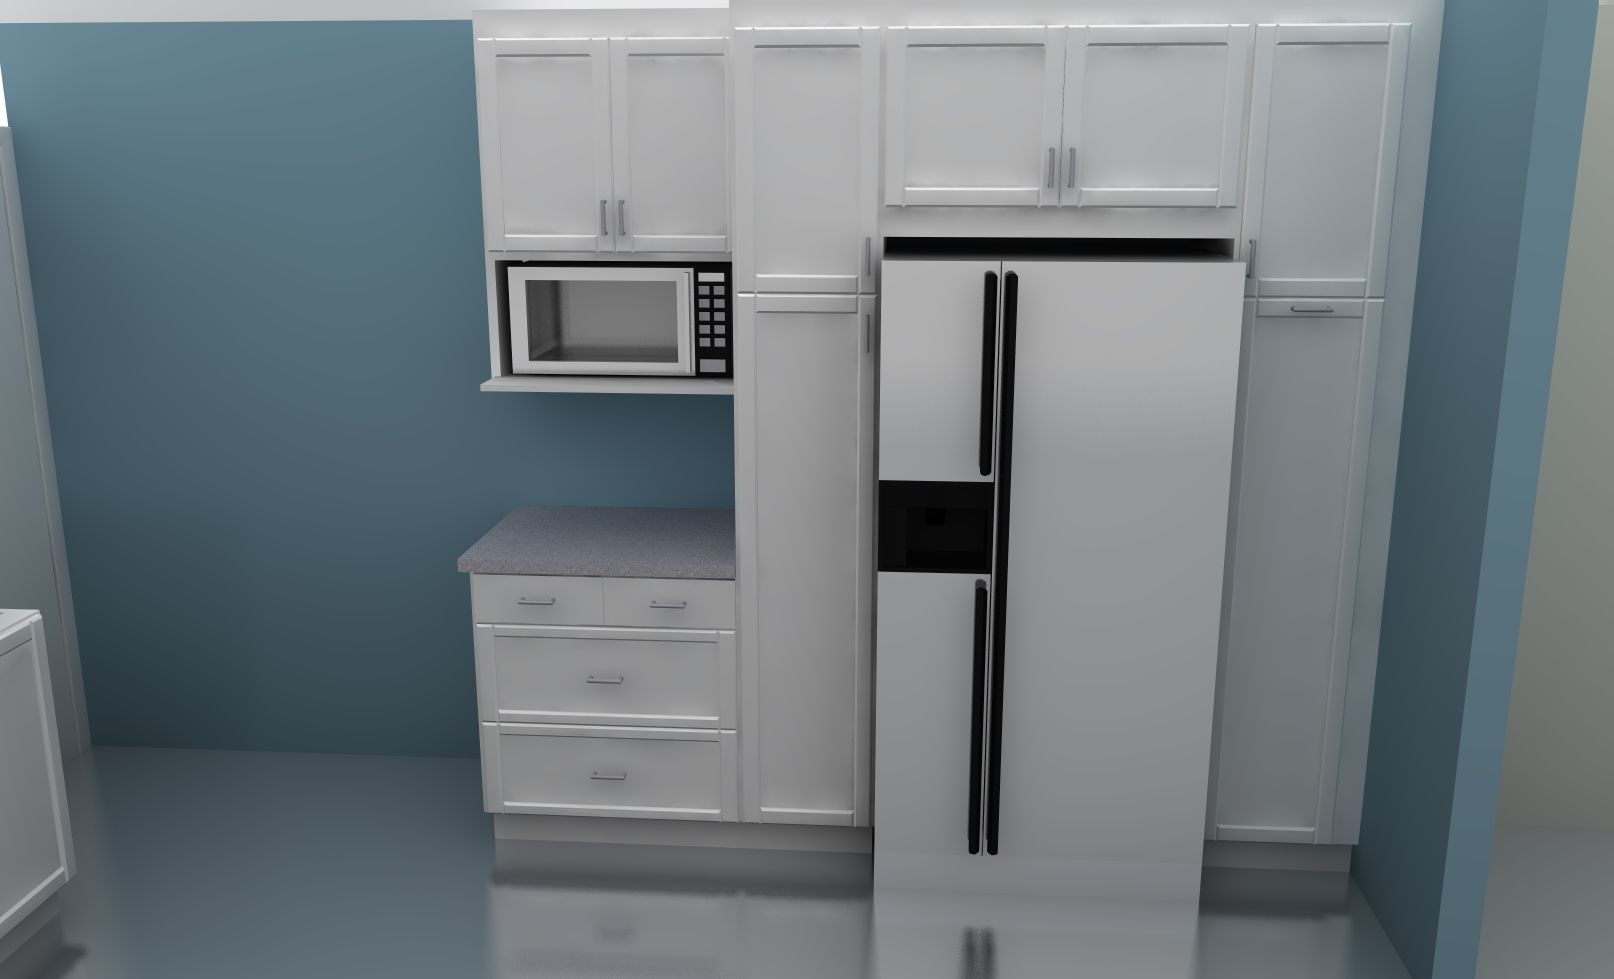 Fridge Idea Tall Kitchen Cabinets Kitchen Pantry Cabinet Freestanding Pantry Cabinet